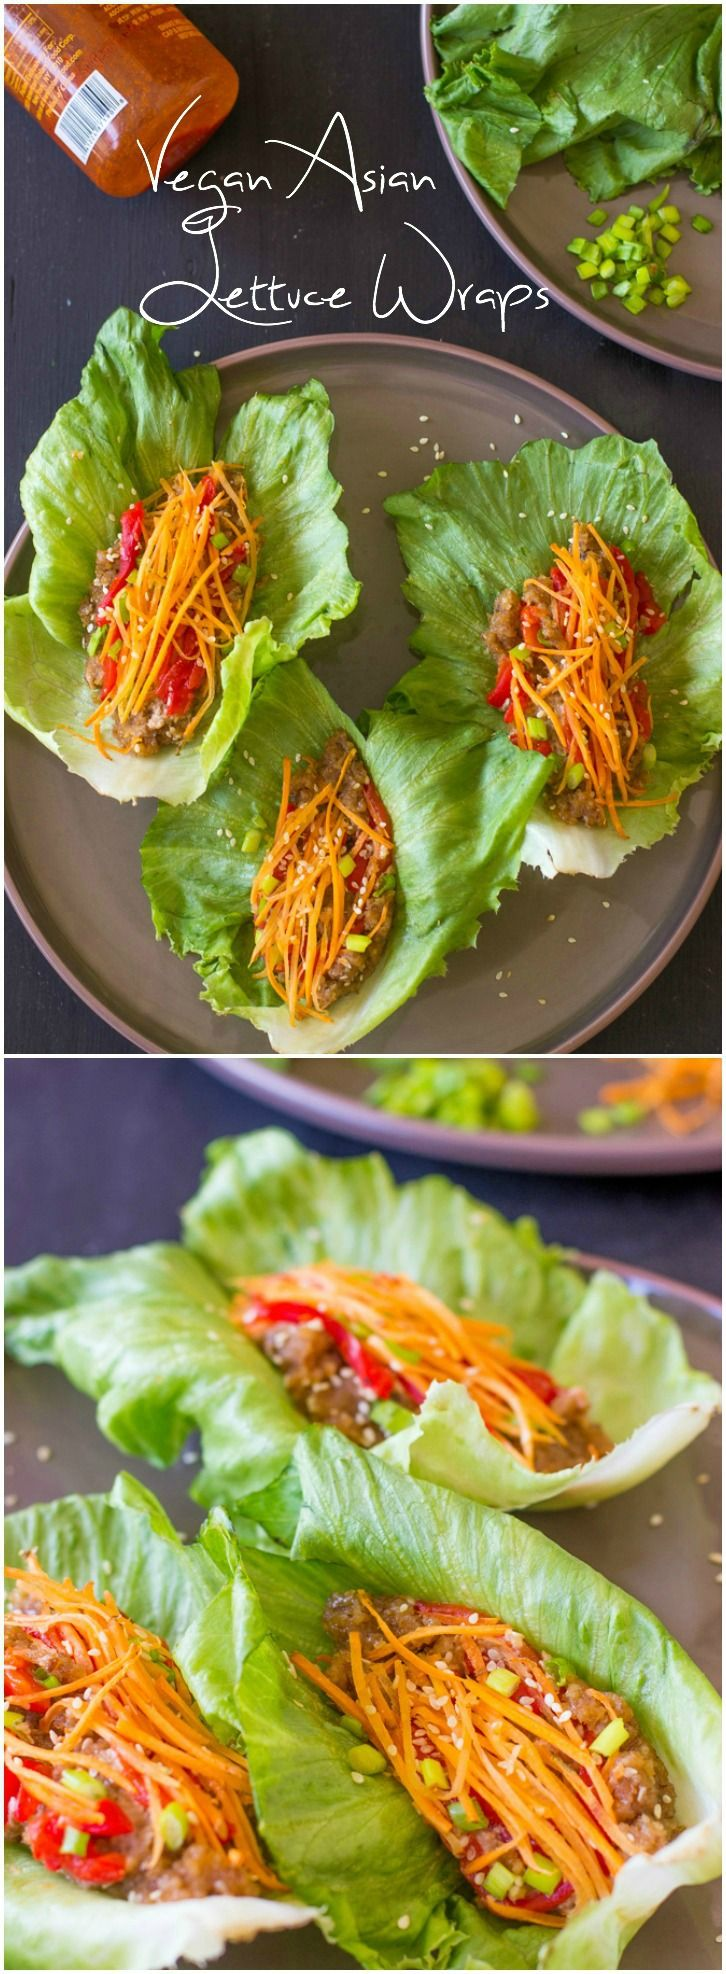 Vegan Asian Lettuce Wraps with Sweet Sriracha Sauce are quick, easy, healthy, delicious and made with an incredible unique filling!!